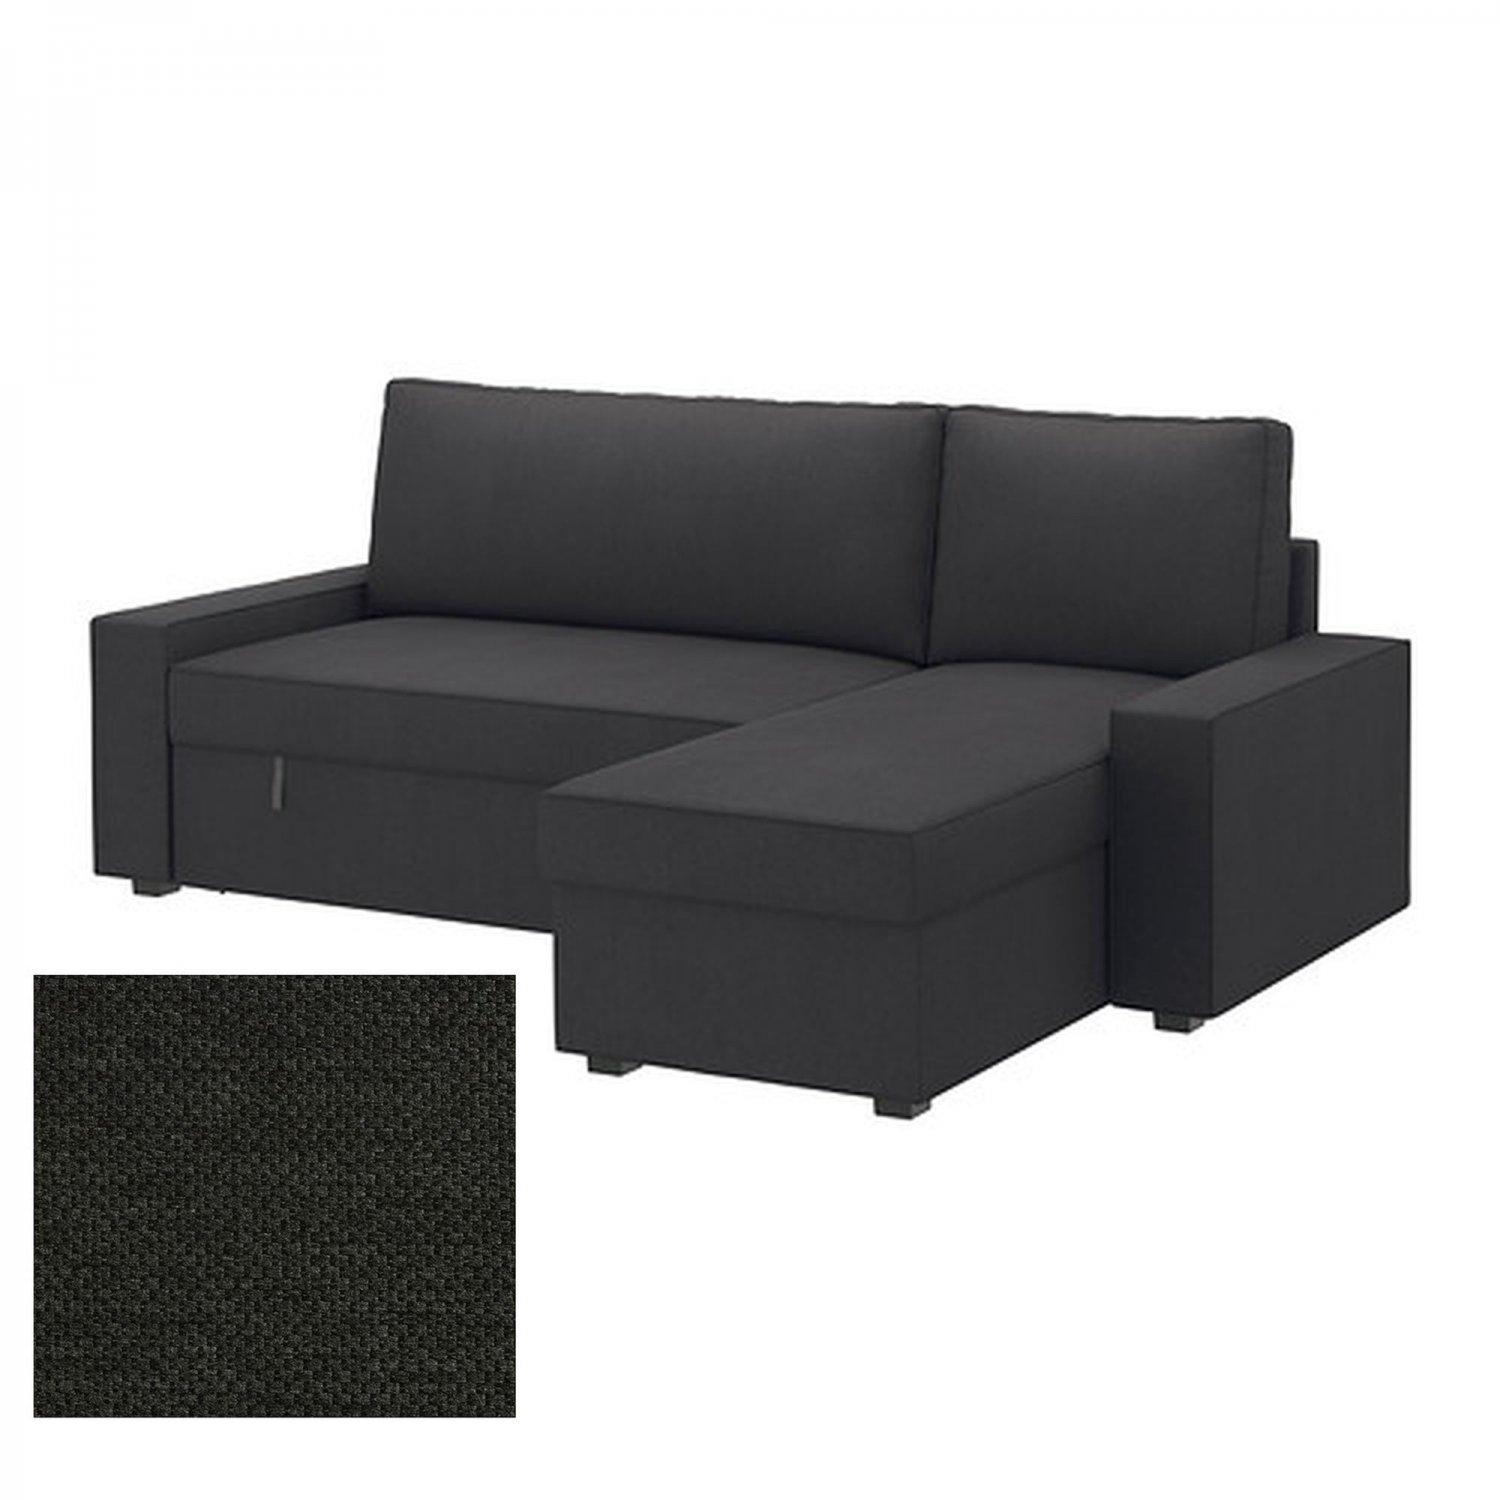 Ikea Vilasund Sofa Bed Ikea Vilasund Sofa Bed With Chaise Longue Slipcover